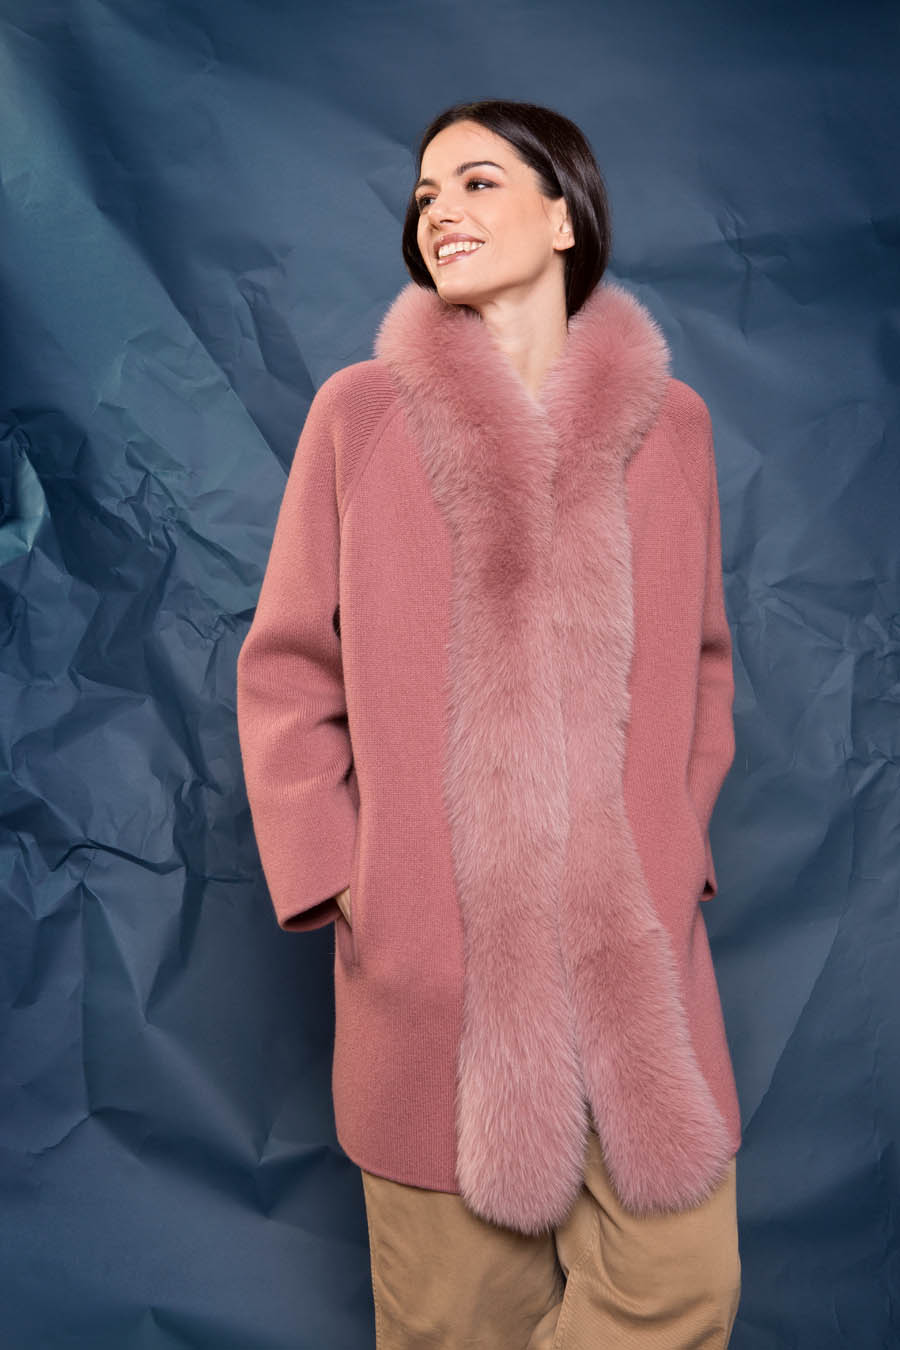 66 P1920 10 01 giovi pelliccia fur pink - Fall Winter 2019-20